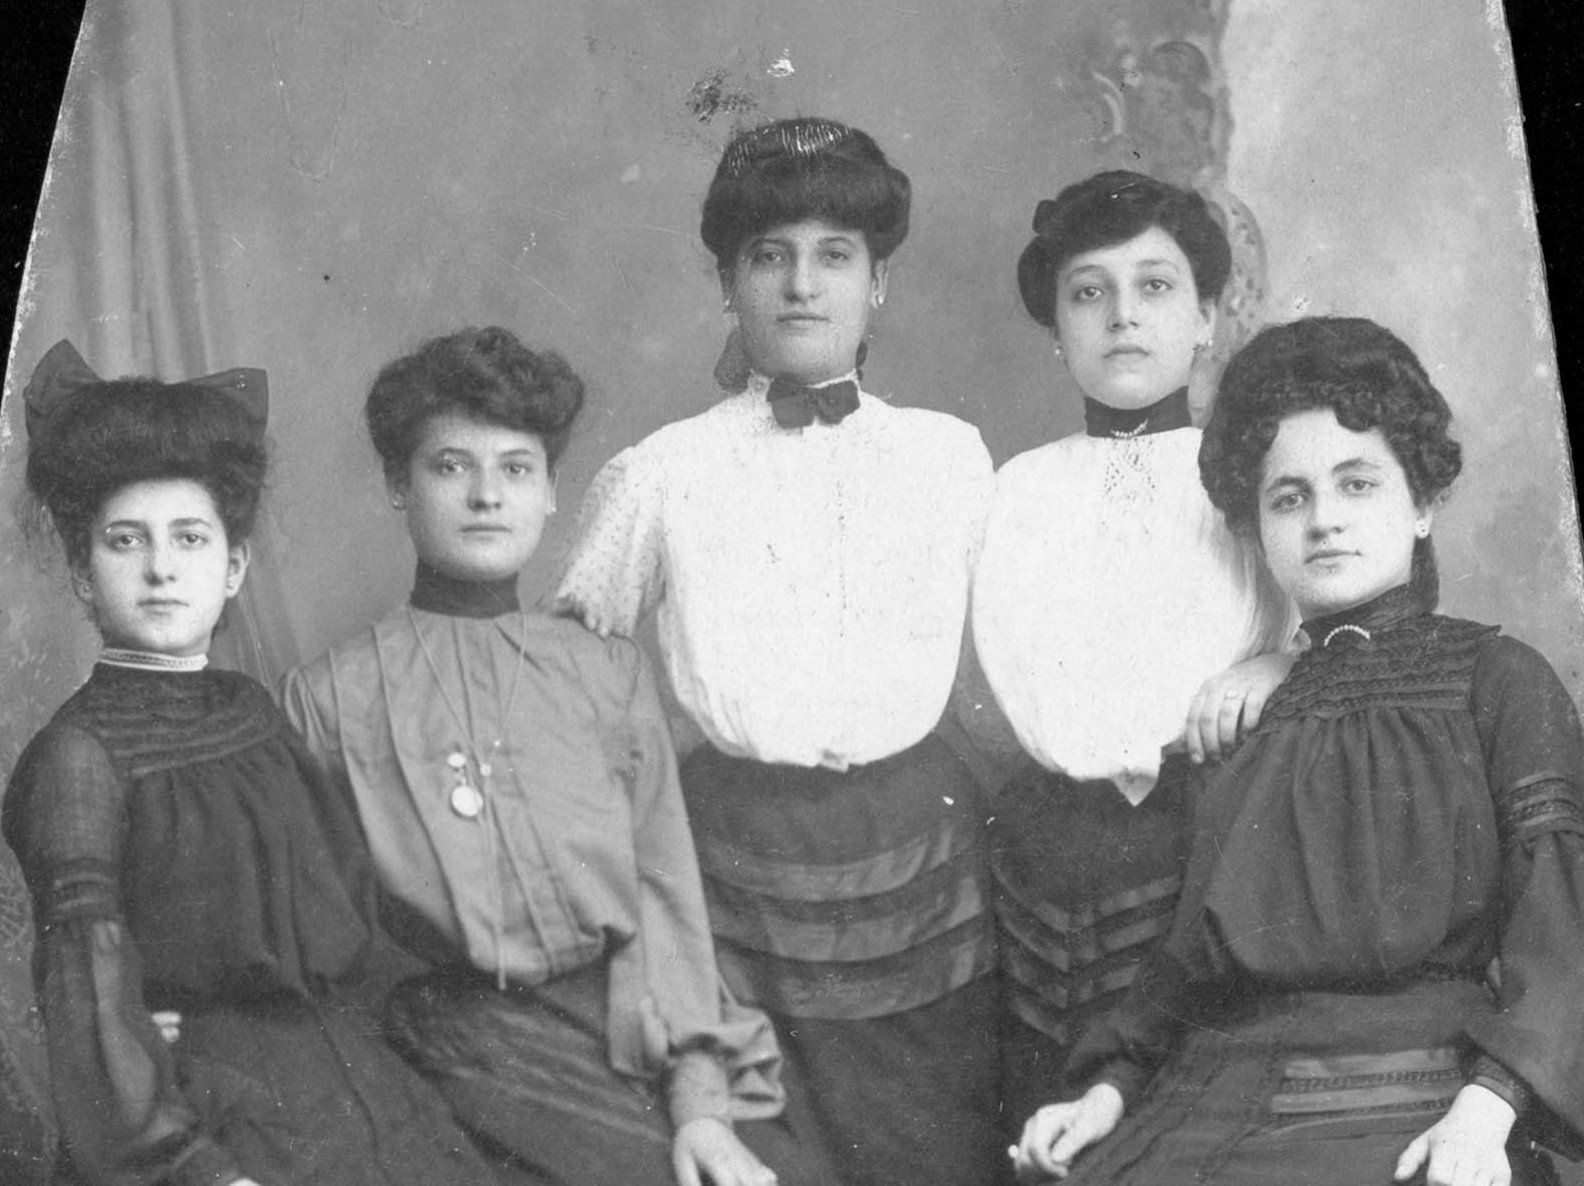 Sarah Burinescu posing with four women who were part of her political group to promote women's suffrage.